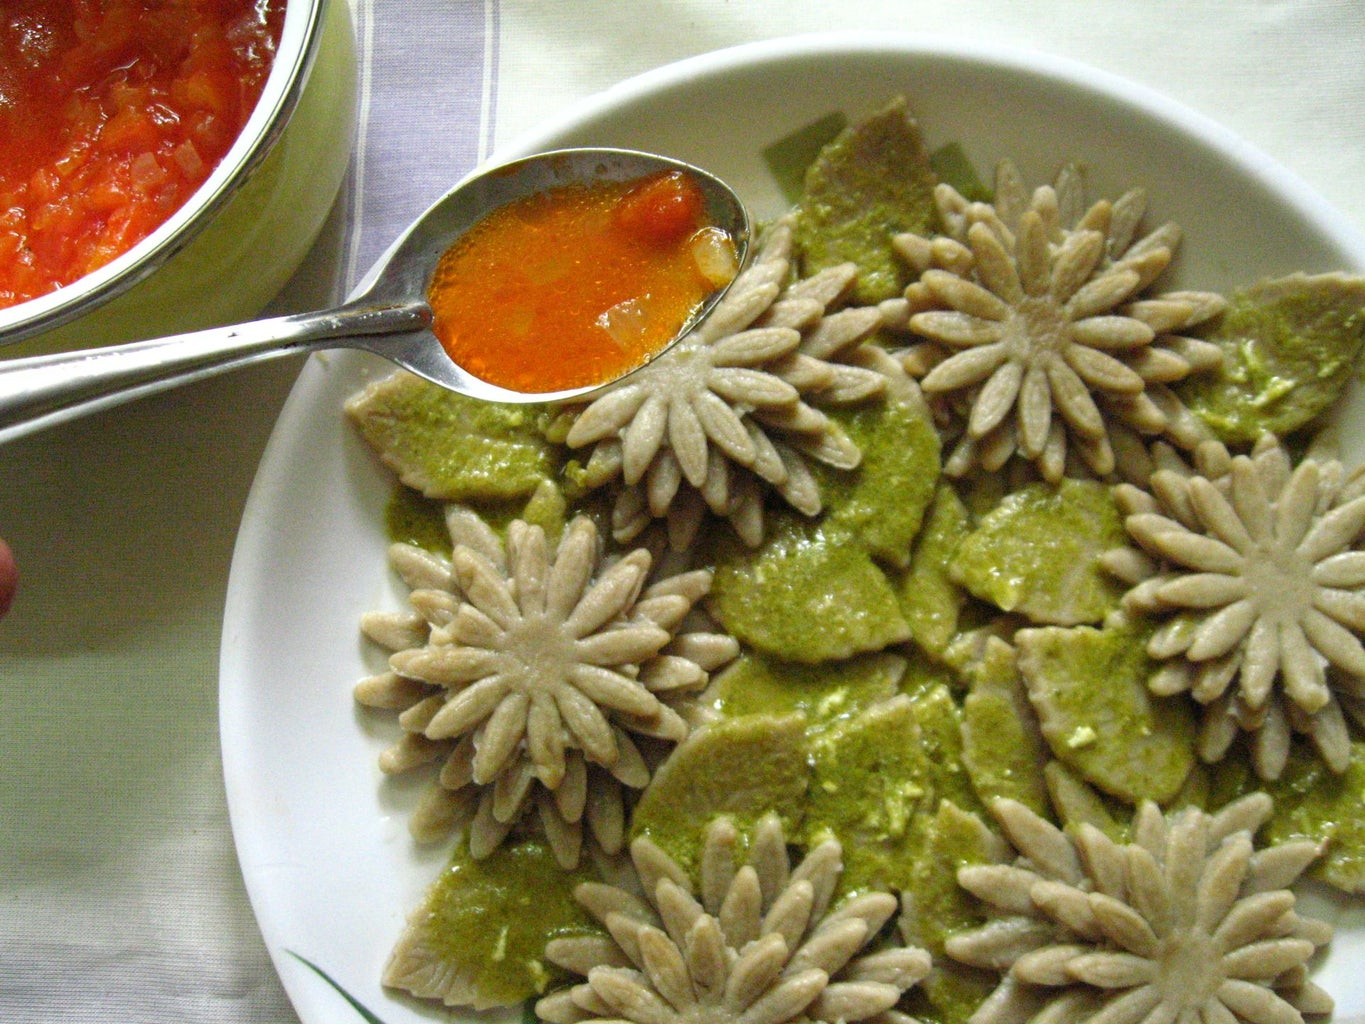 Arrange the Cooked Pasta and Serve With Sauce